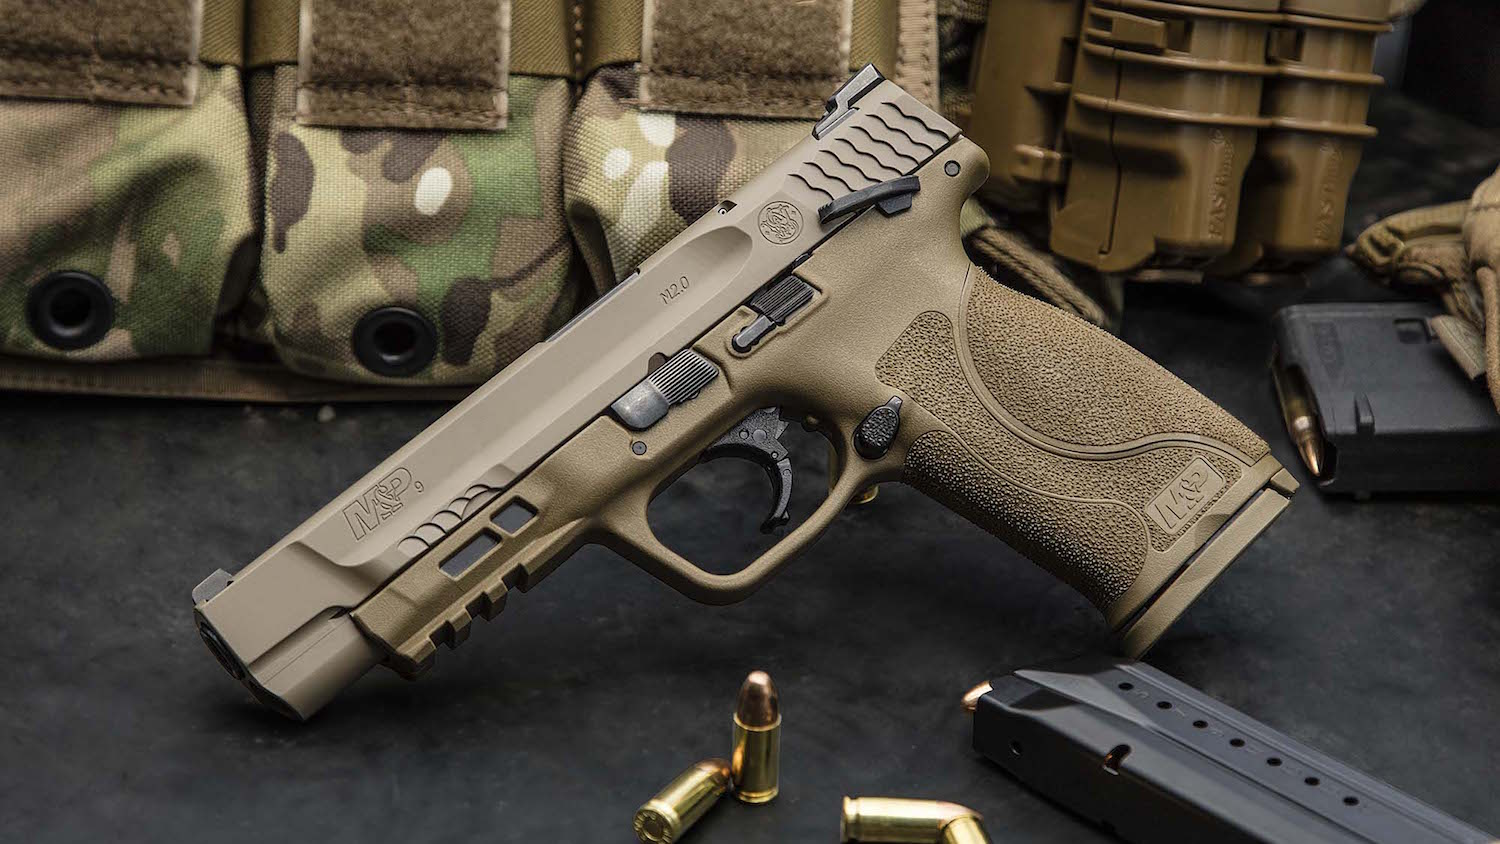 10 9mm Pistols Perfect For New and Experienced Shooters Alike